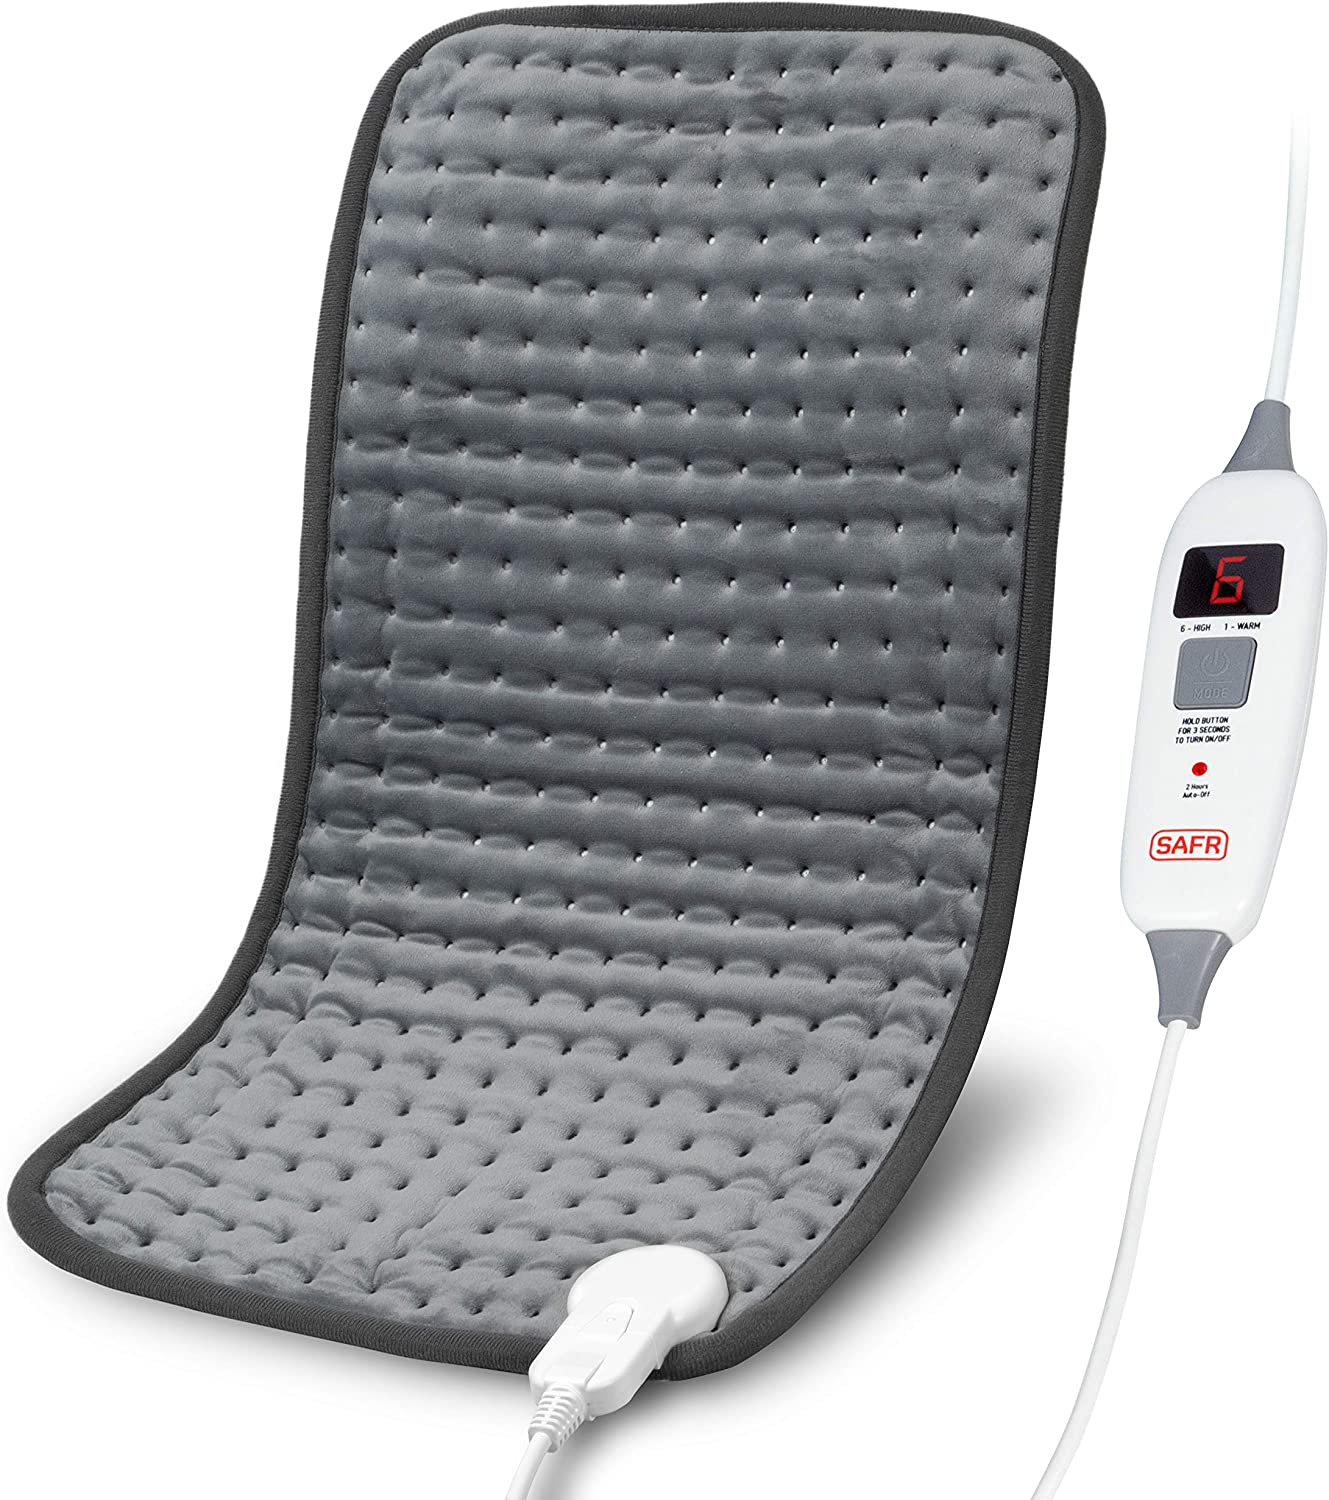 """SAFR Thermotherapy Electric Heating Pad - FirmTouch Microfiber - [12""""x24"""" 